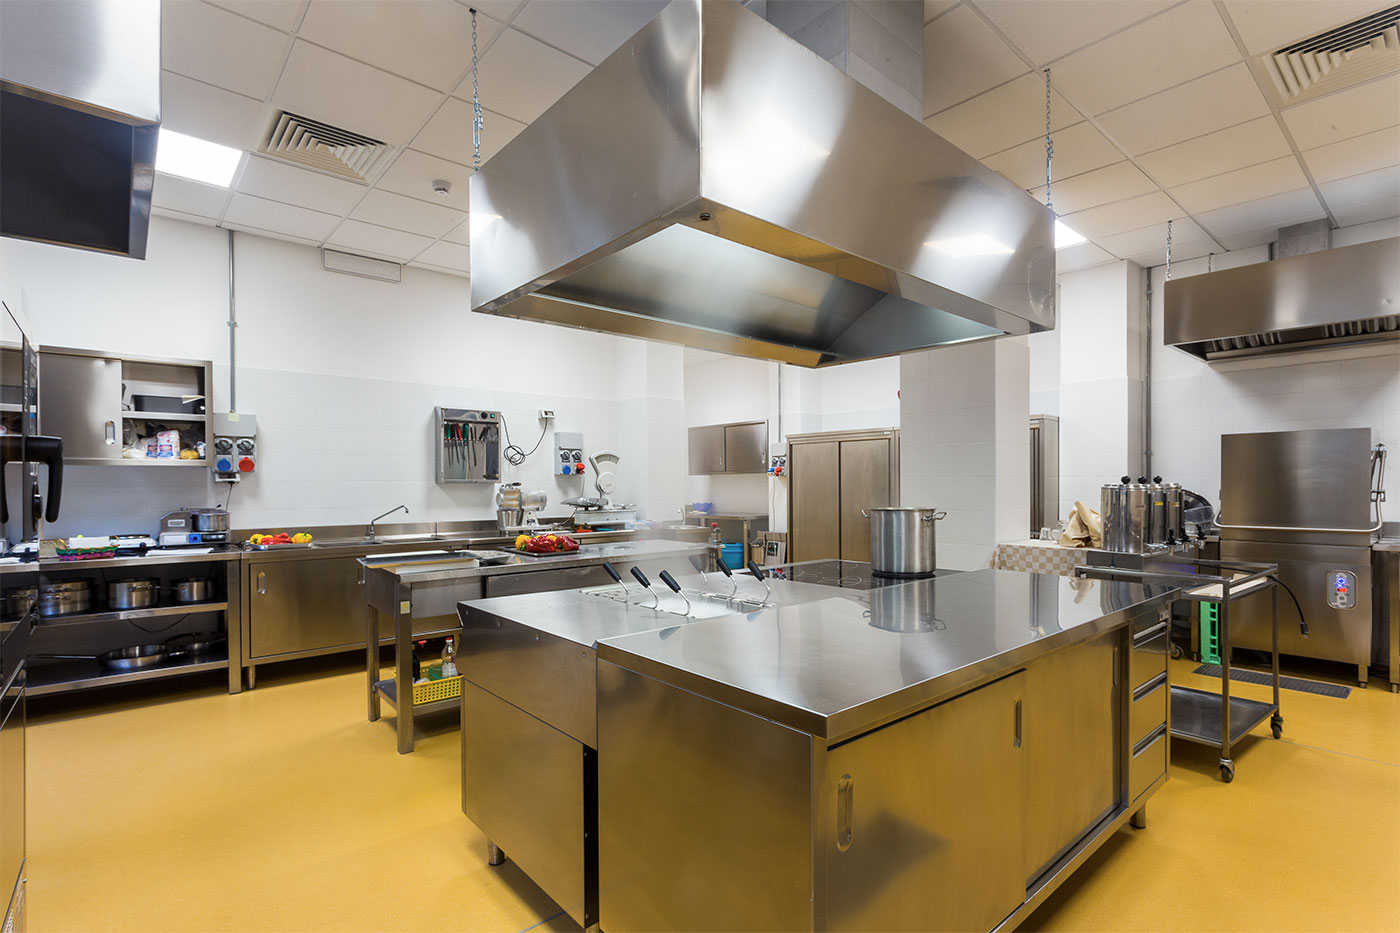 Cleaning Services for Restaurants - Restaurants